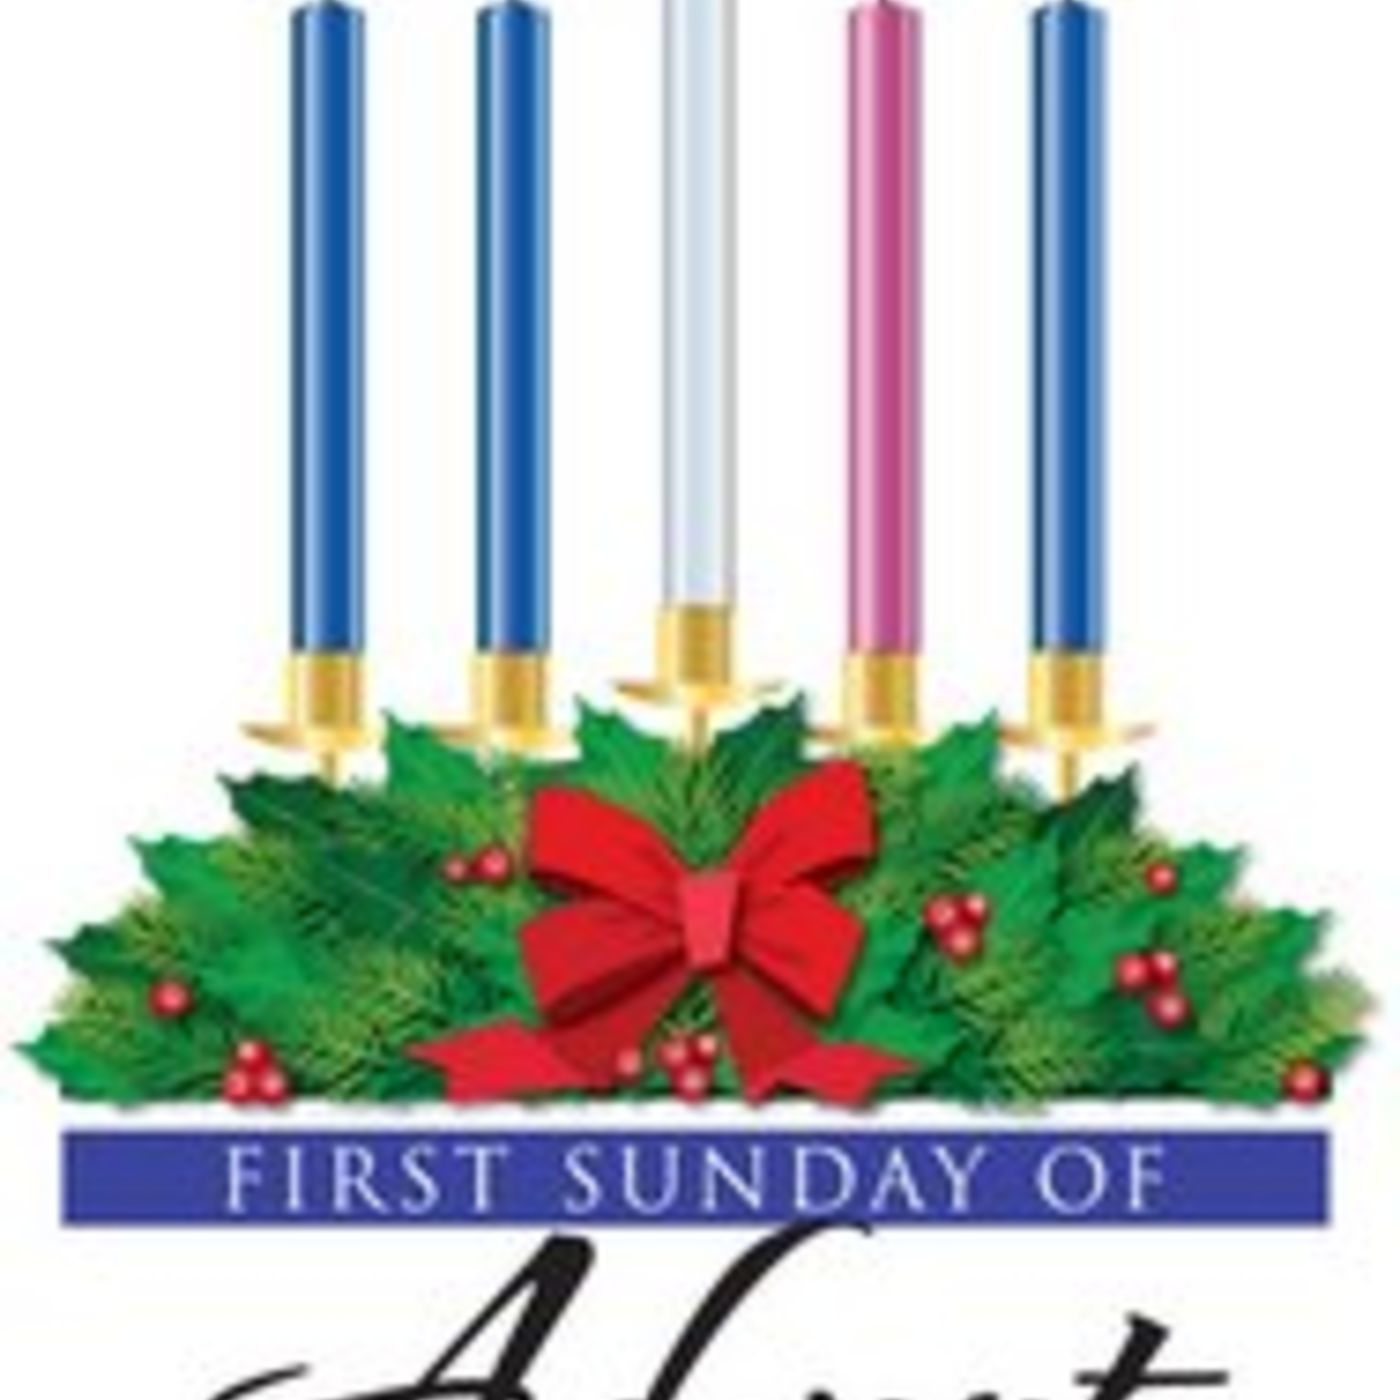 First Sunday of Advent - Expectation